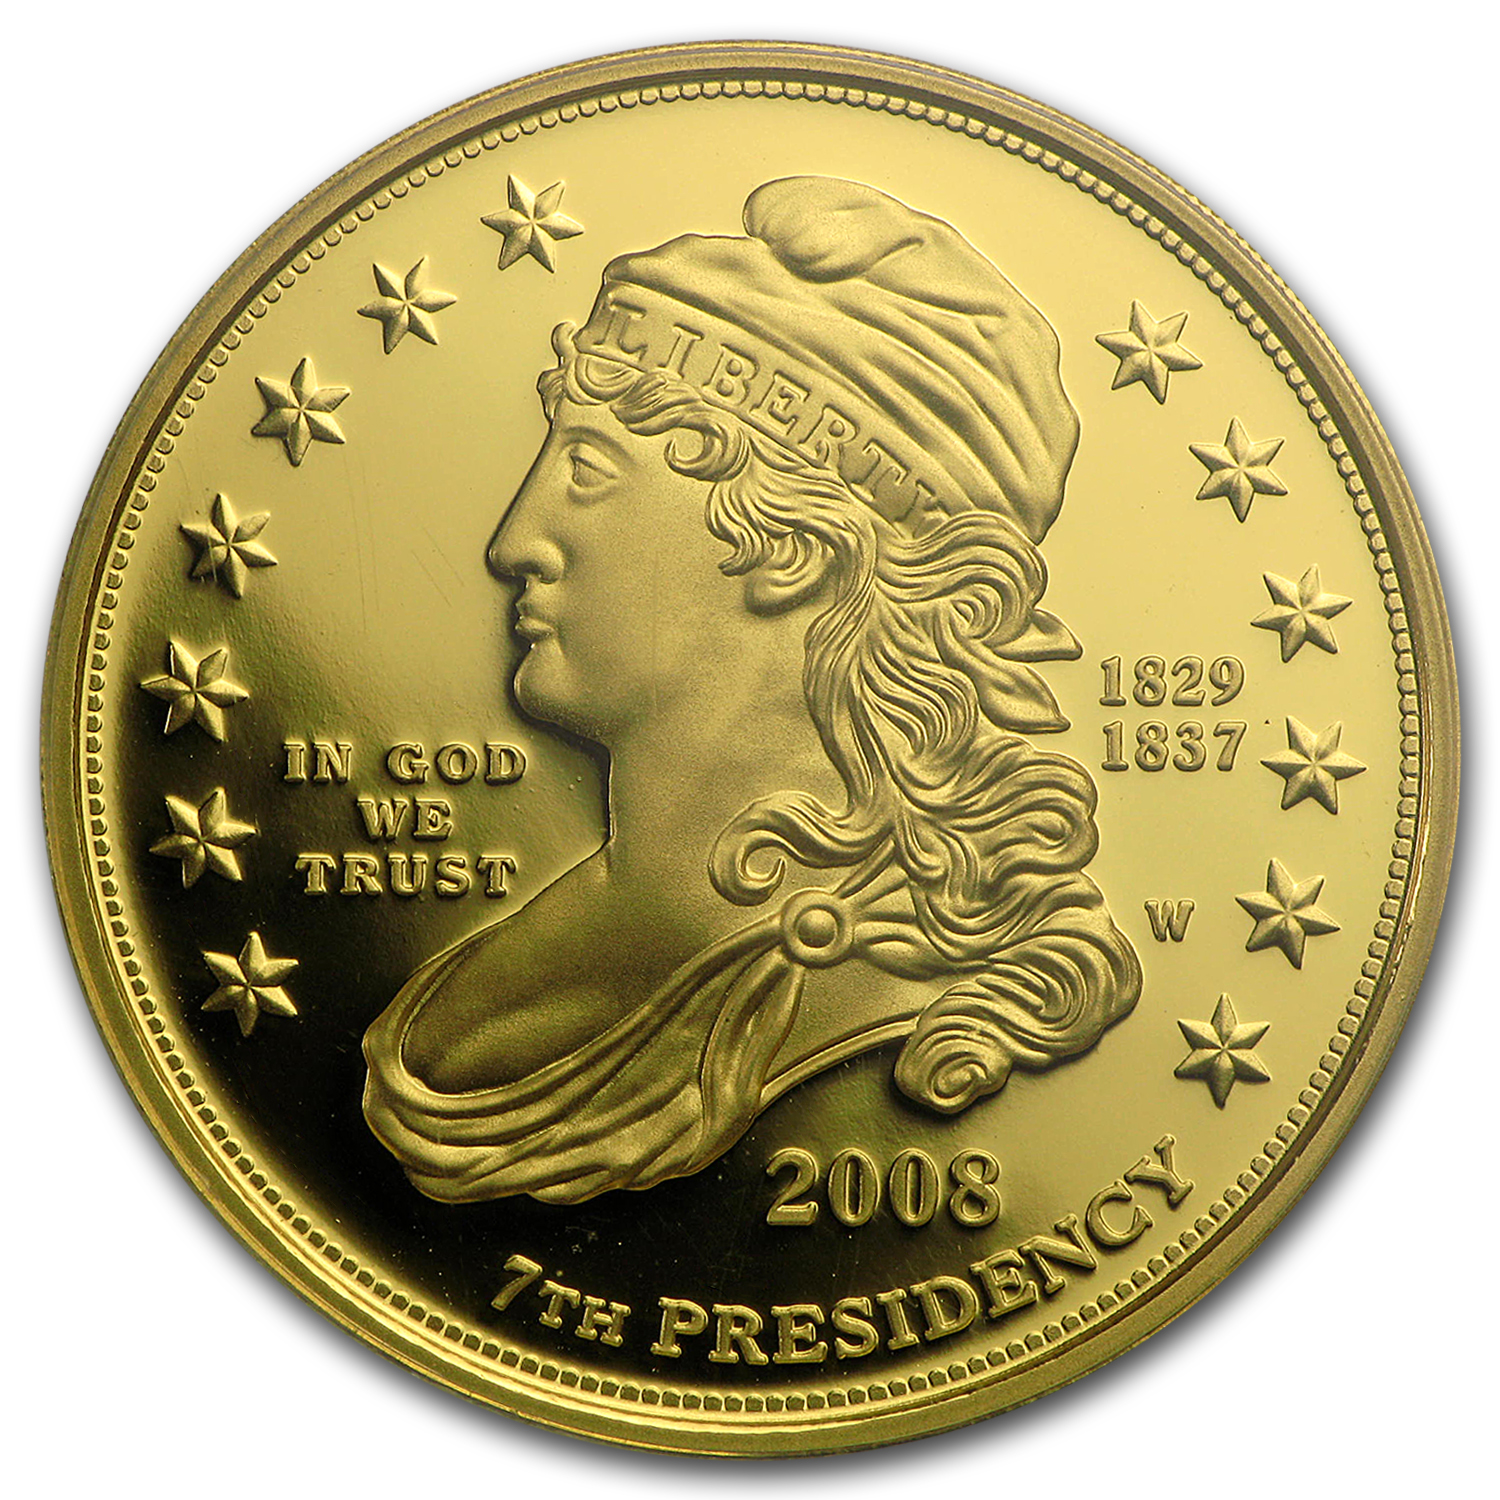 2008-W 1/2 oz Proof Gold Jackson's Liberty PR-69 PCGS